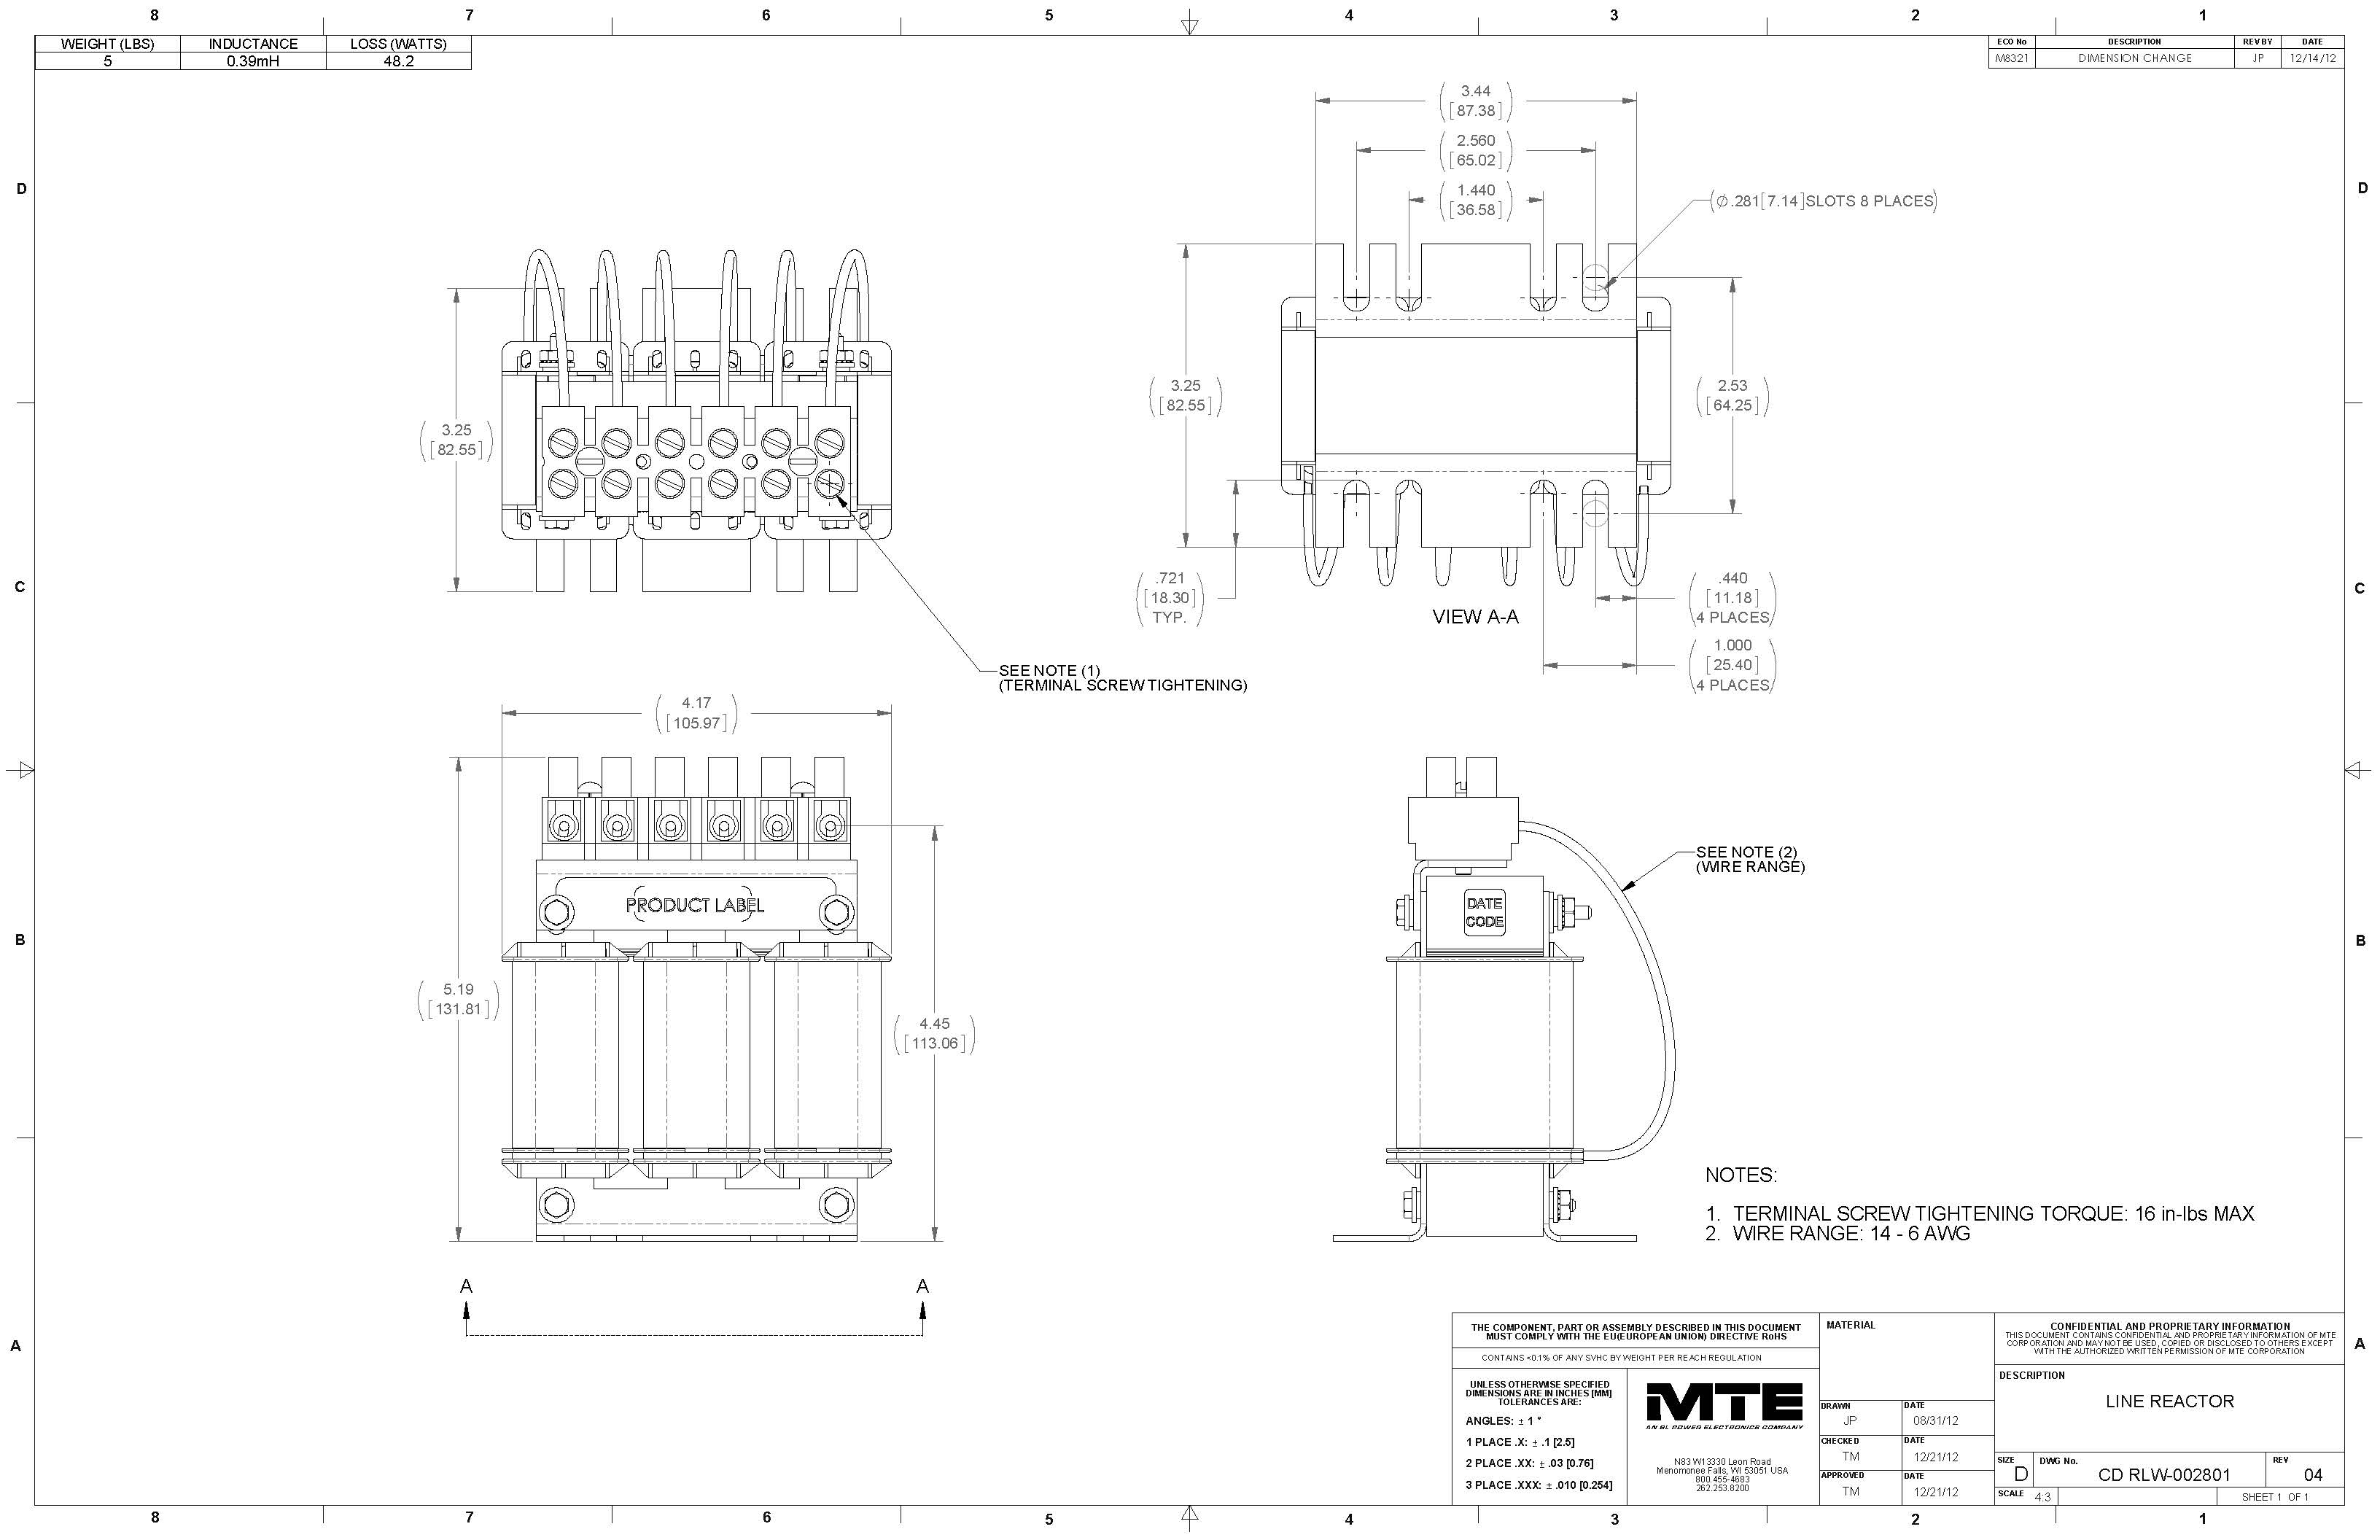 Image of an MTE Reactor RLW-002801